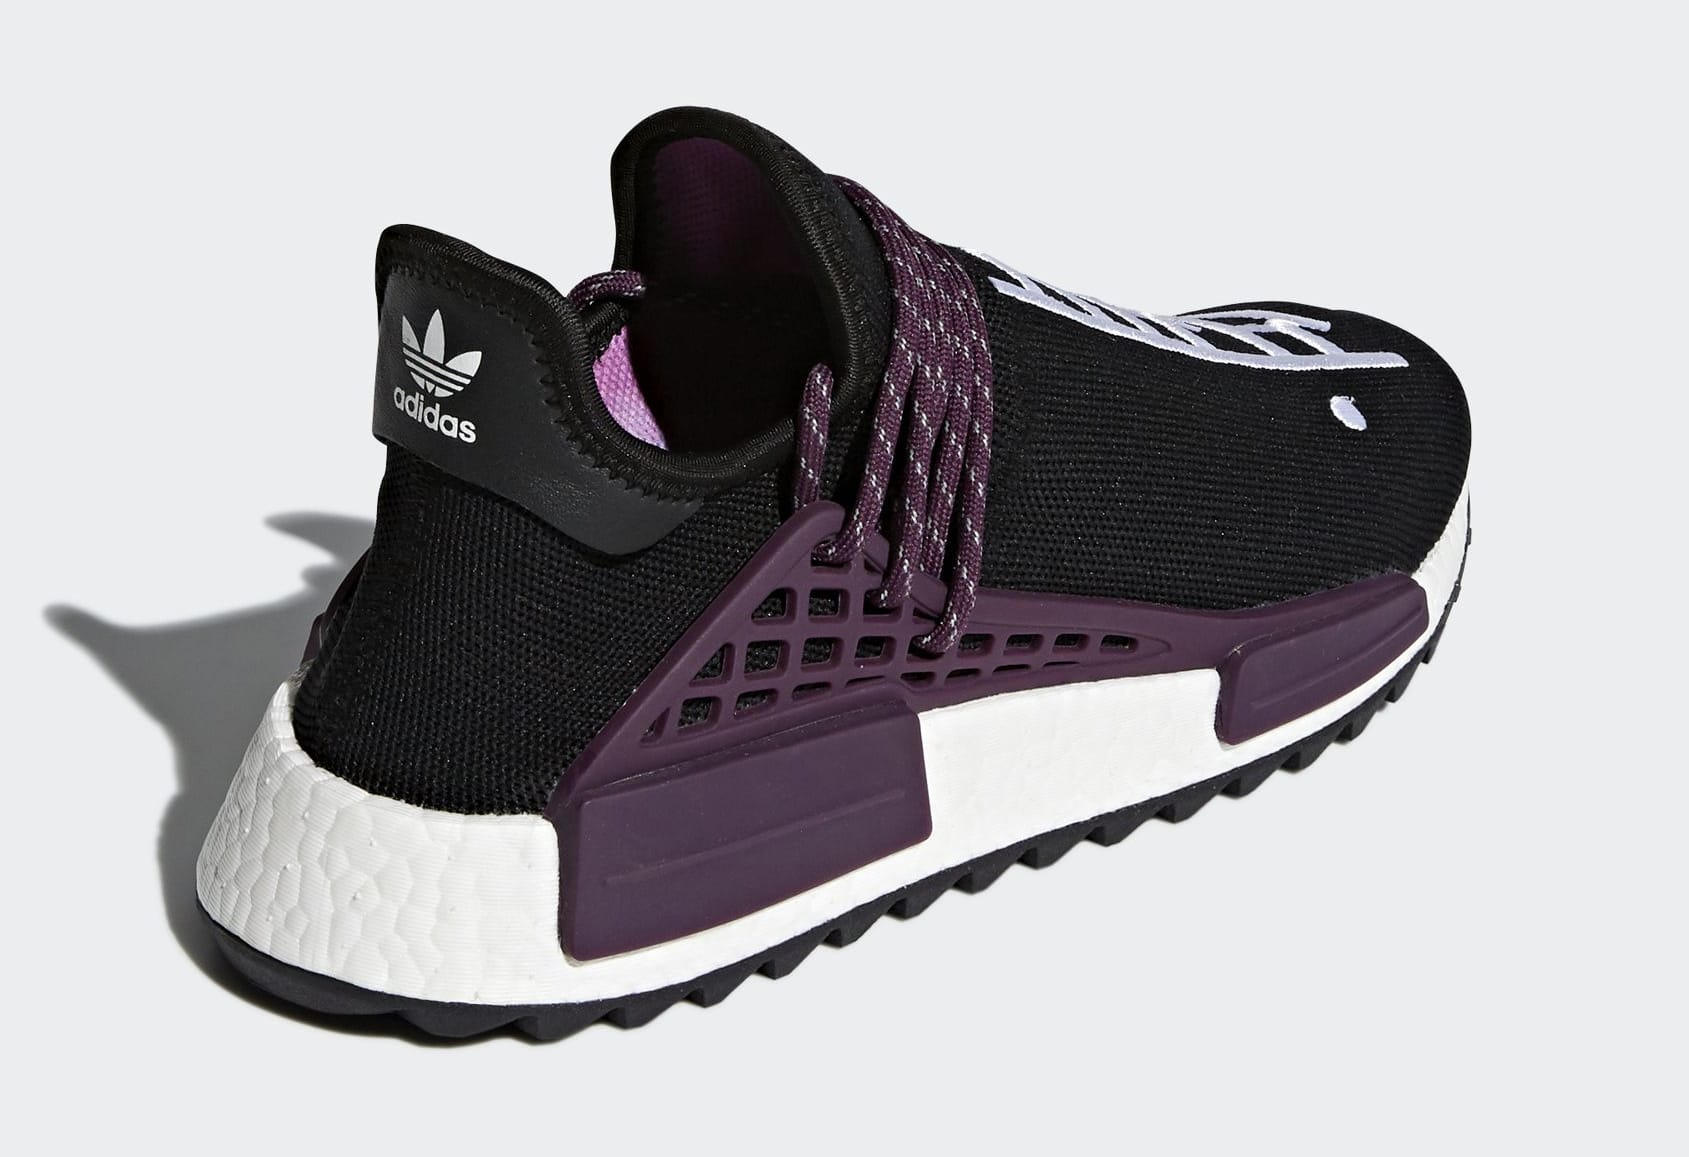 huge selection of 5f316 2d929 Cheap Pharrell x adidas NMD Hu Trail Equality AC7033 For Sale